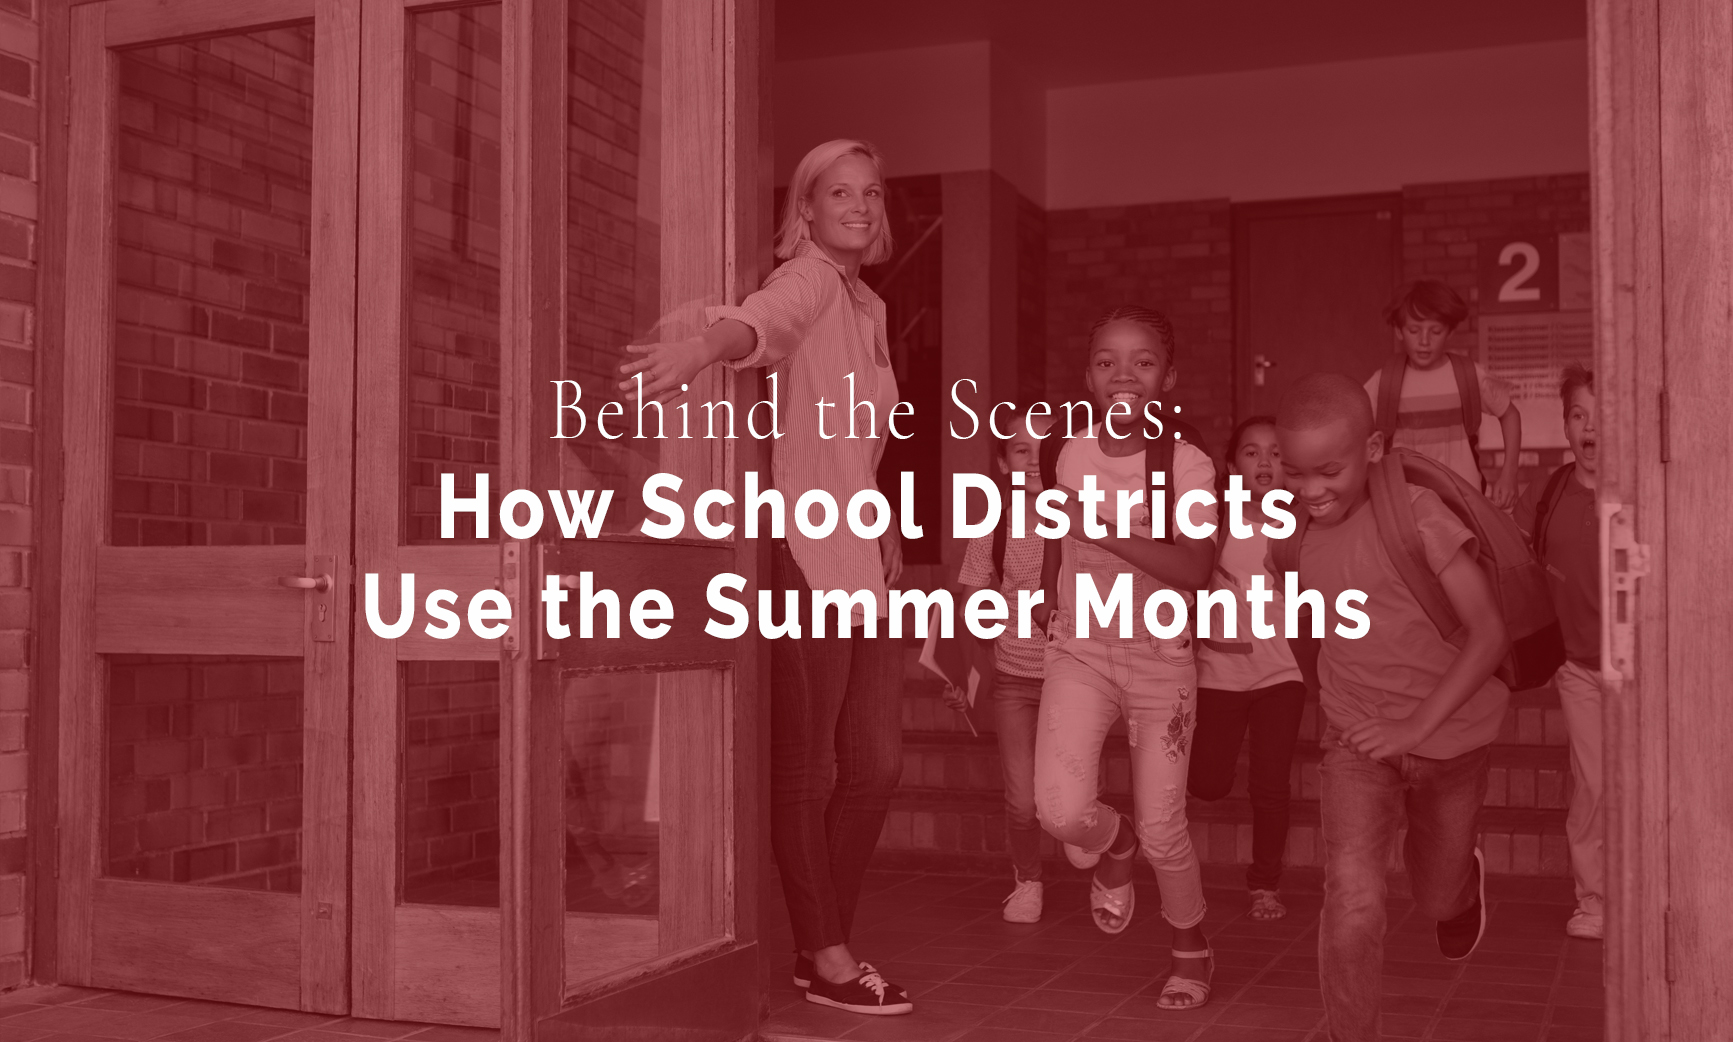 BEHIND THE SCENES: HOW SCHOOL DISTRICTS USE THE SUMMER MONTHS